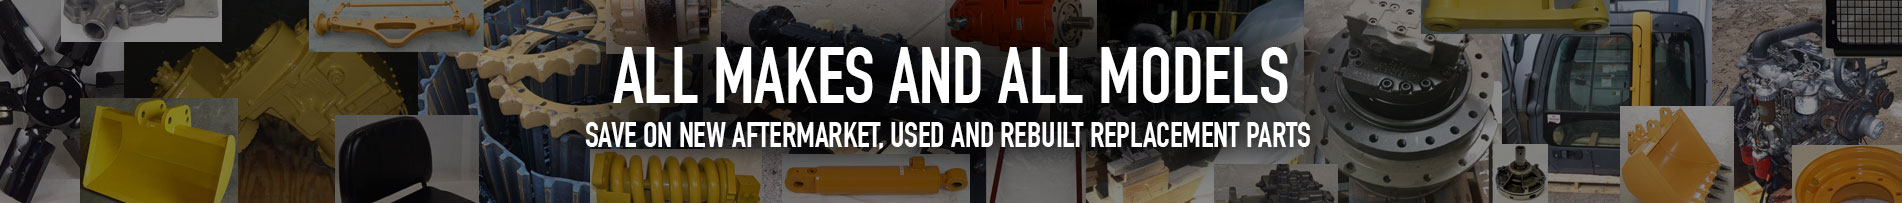 New aftermarket, used and rebuilt heavy equipment replacement parts.